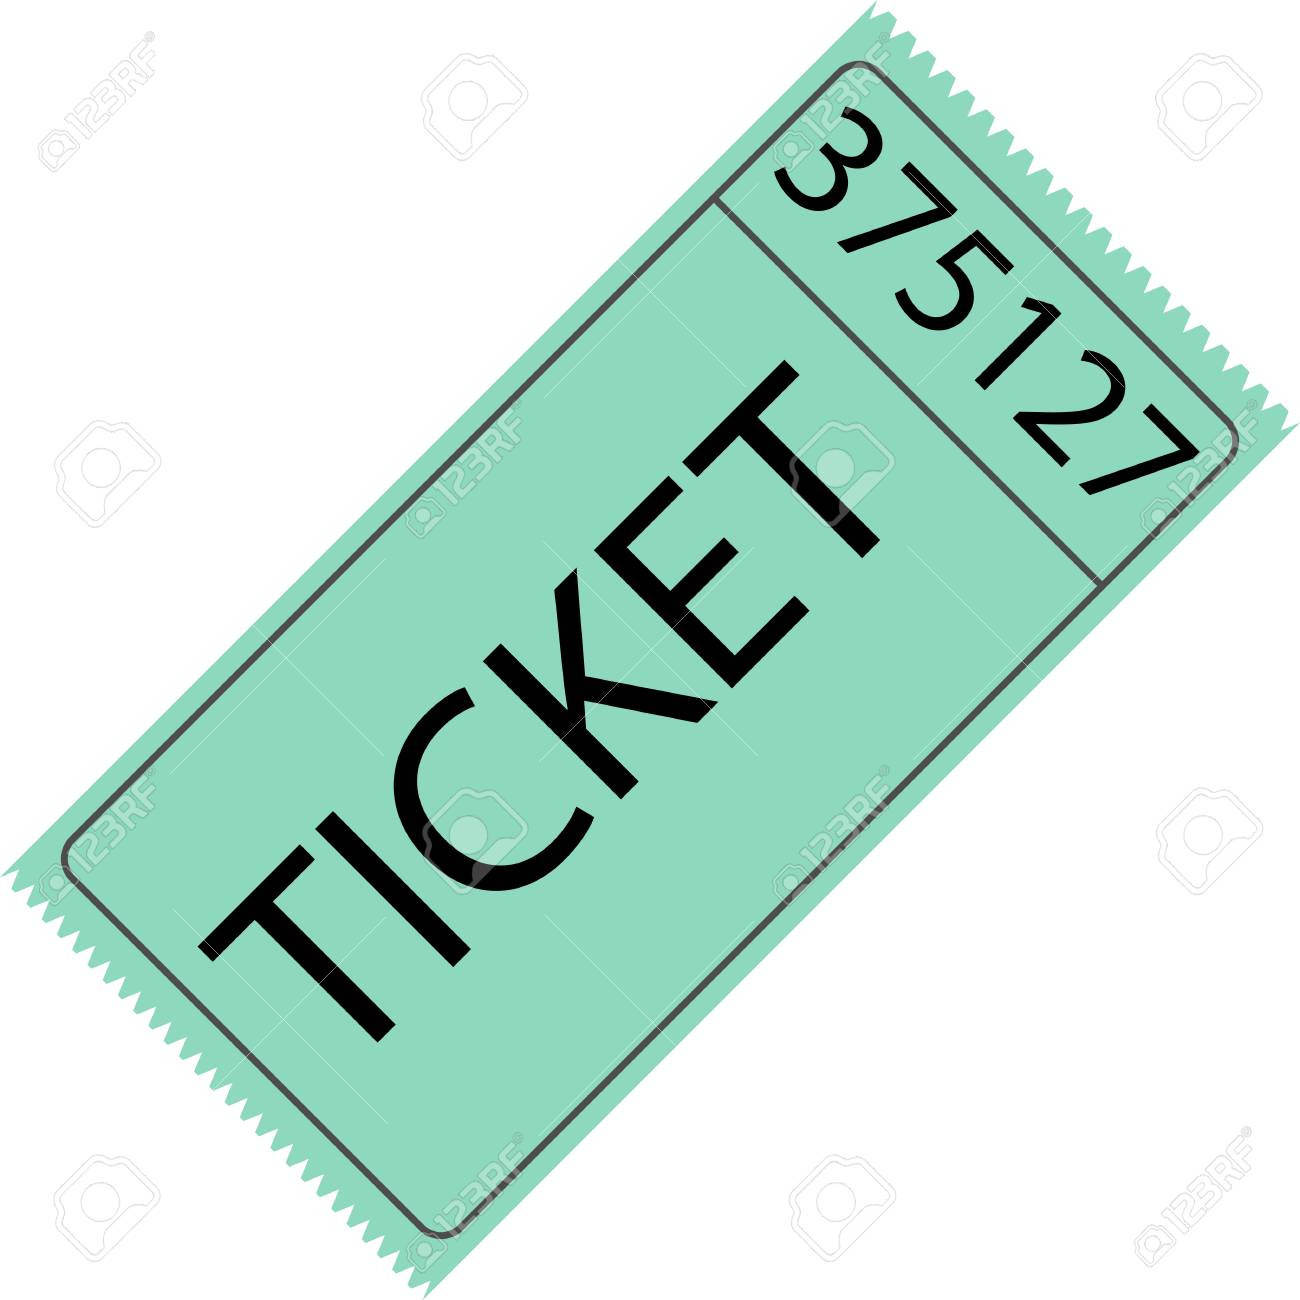 tear off ticket with number royalty free cliparts vectors and